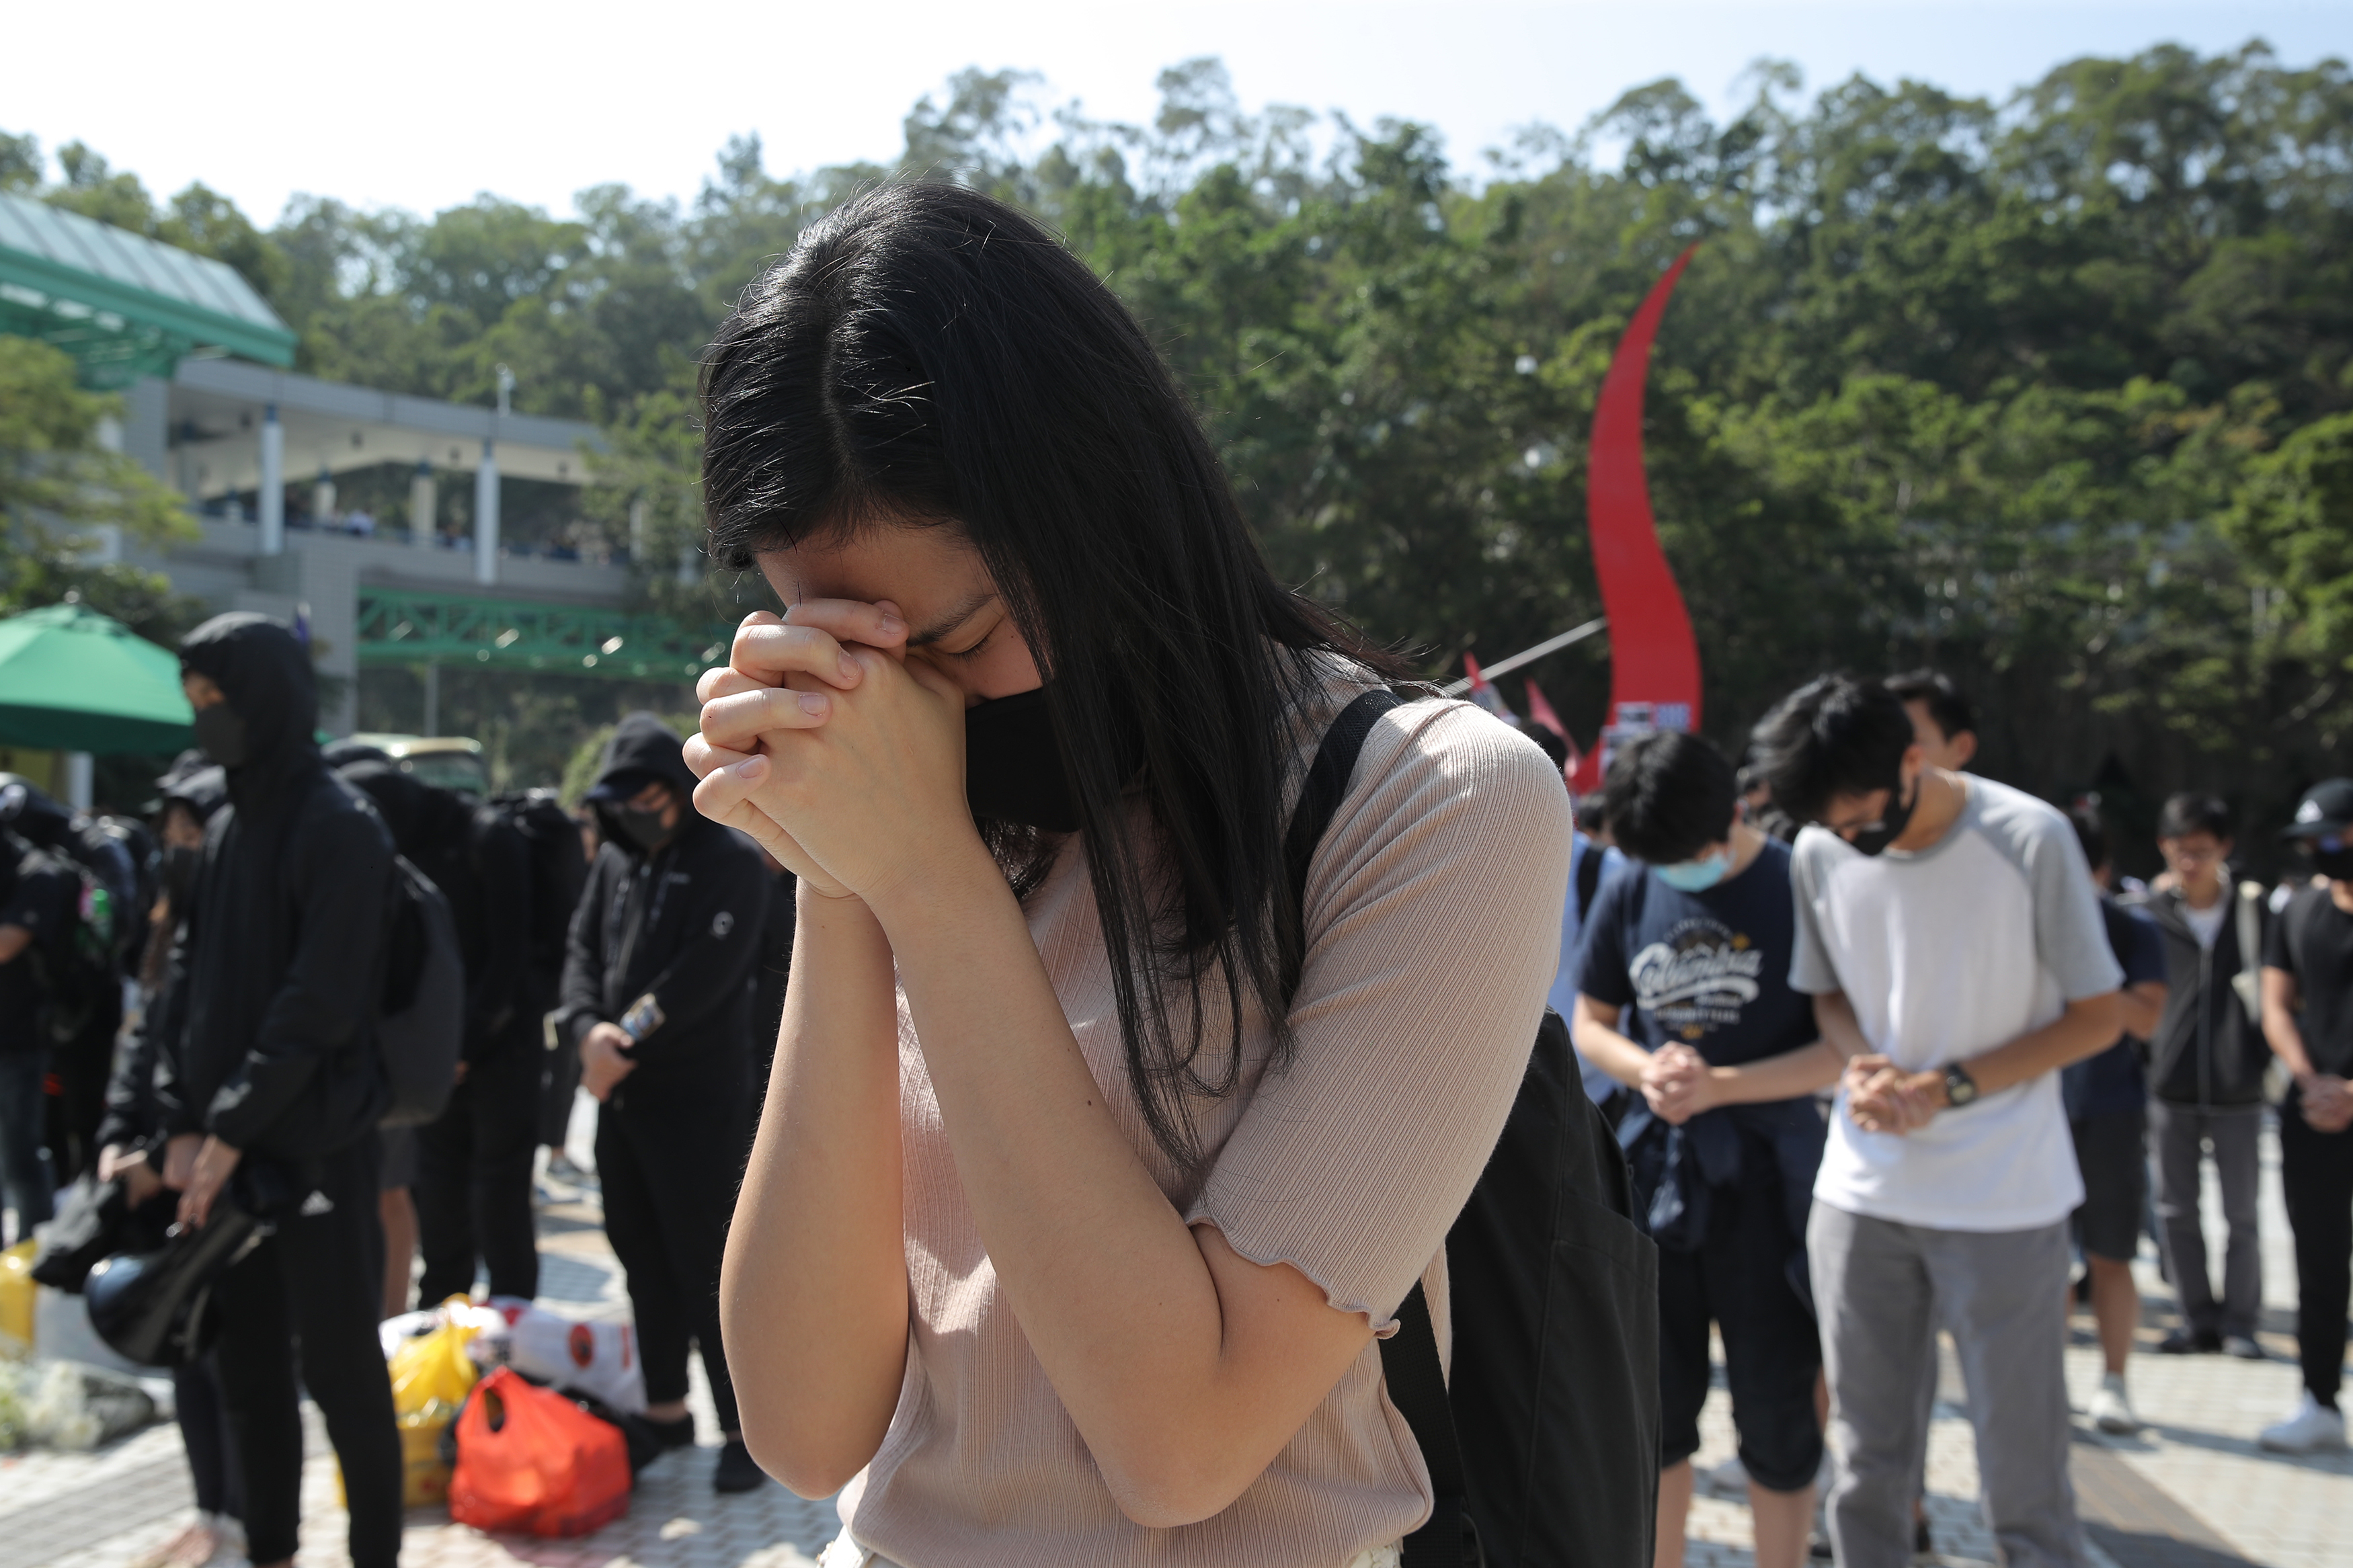 Hong Kong students death fuels more anger against police